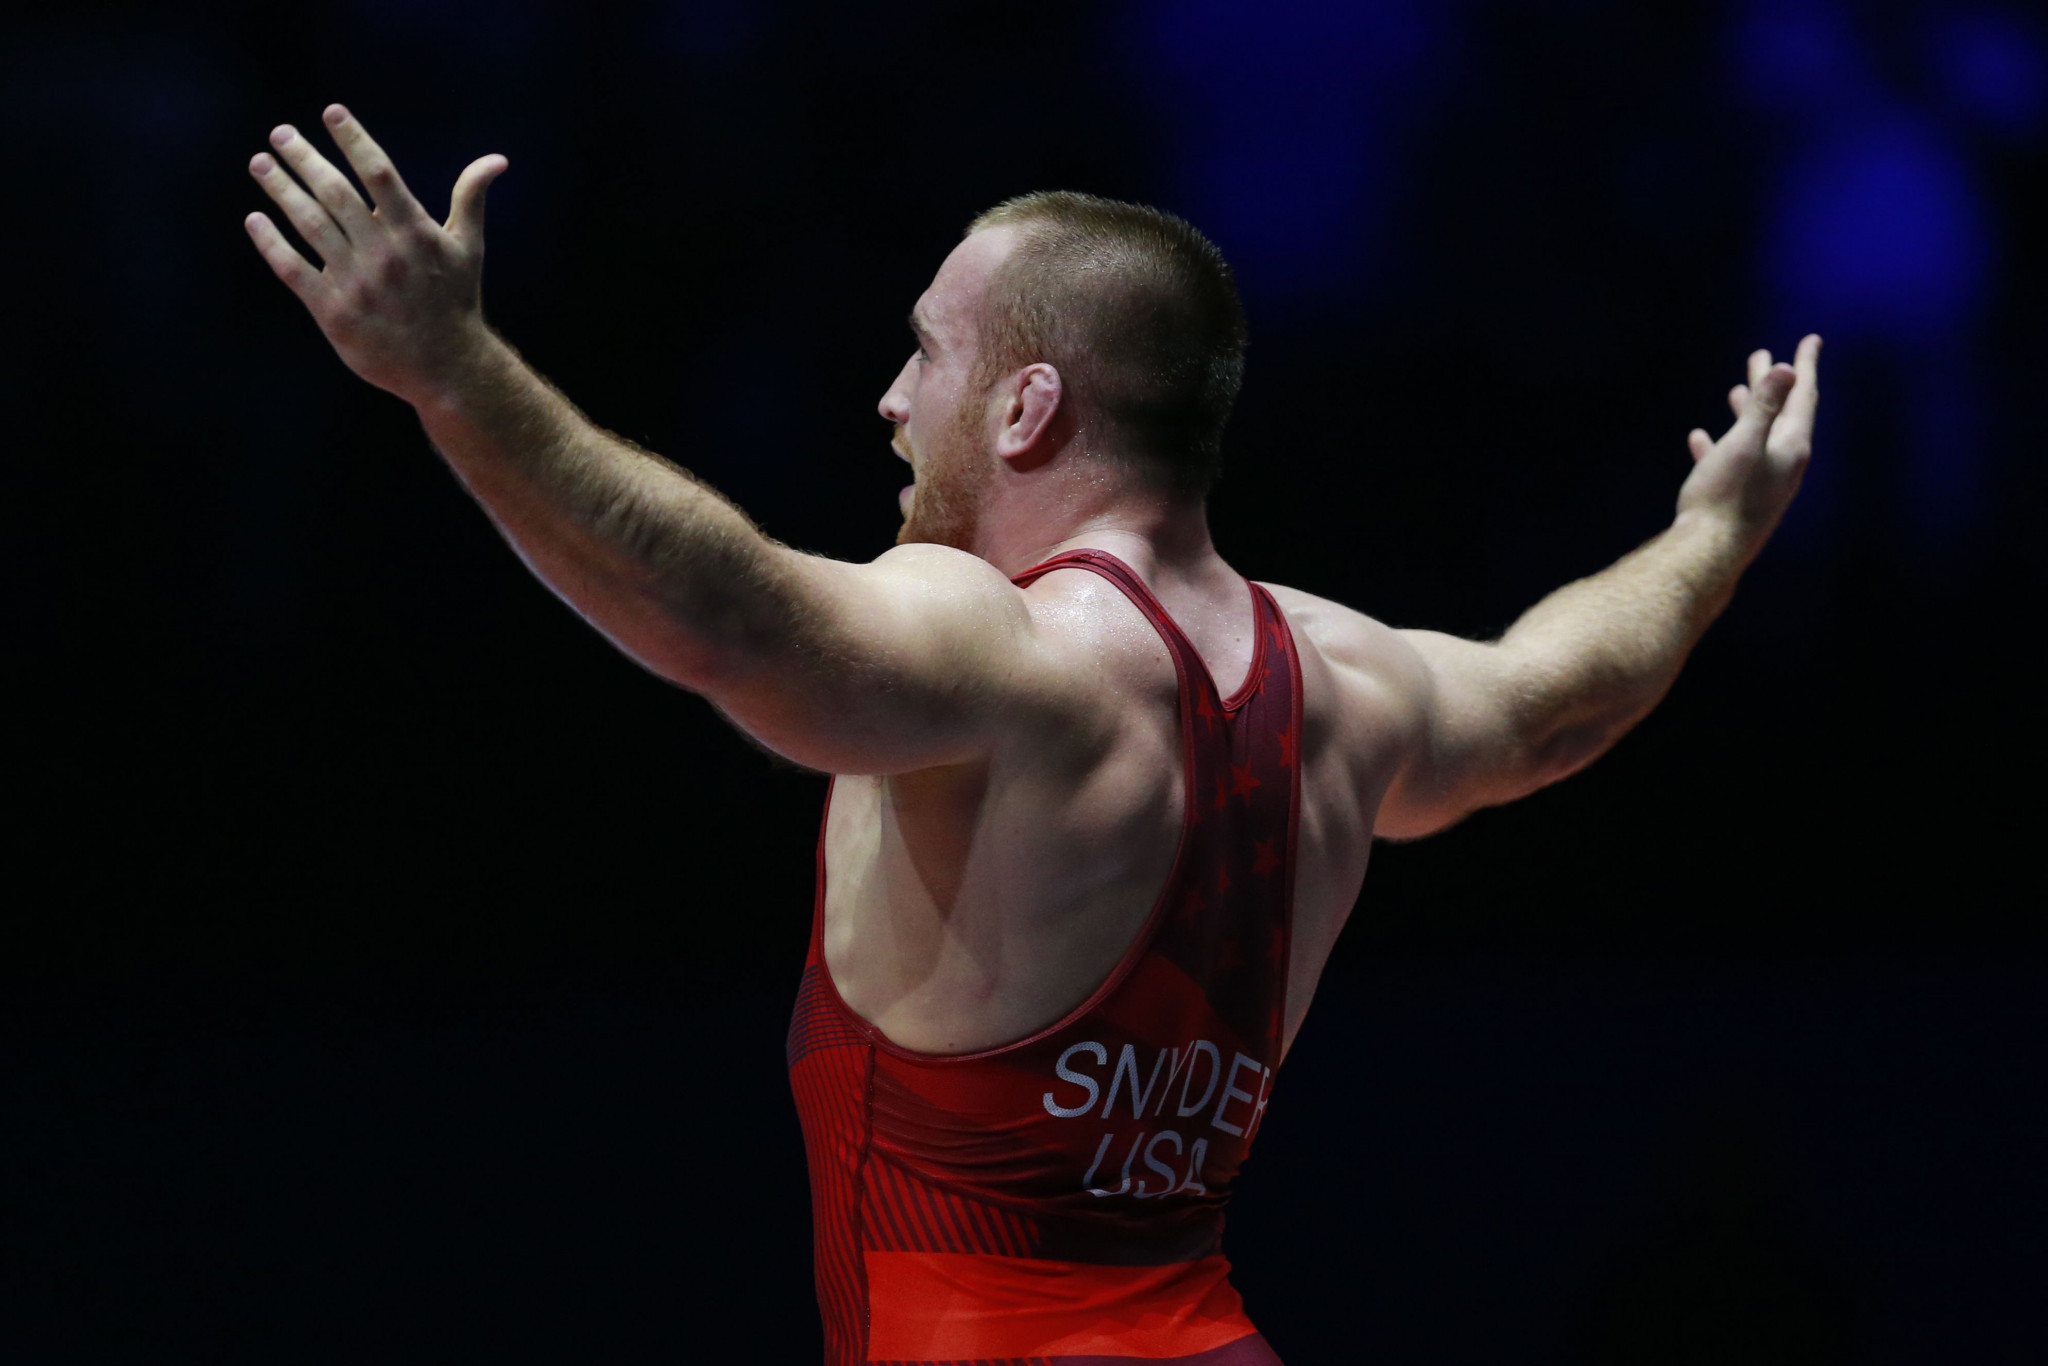 United States and China secure team titles at UWW Dan Kolov-Nikola Petrov tournament